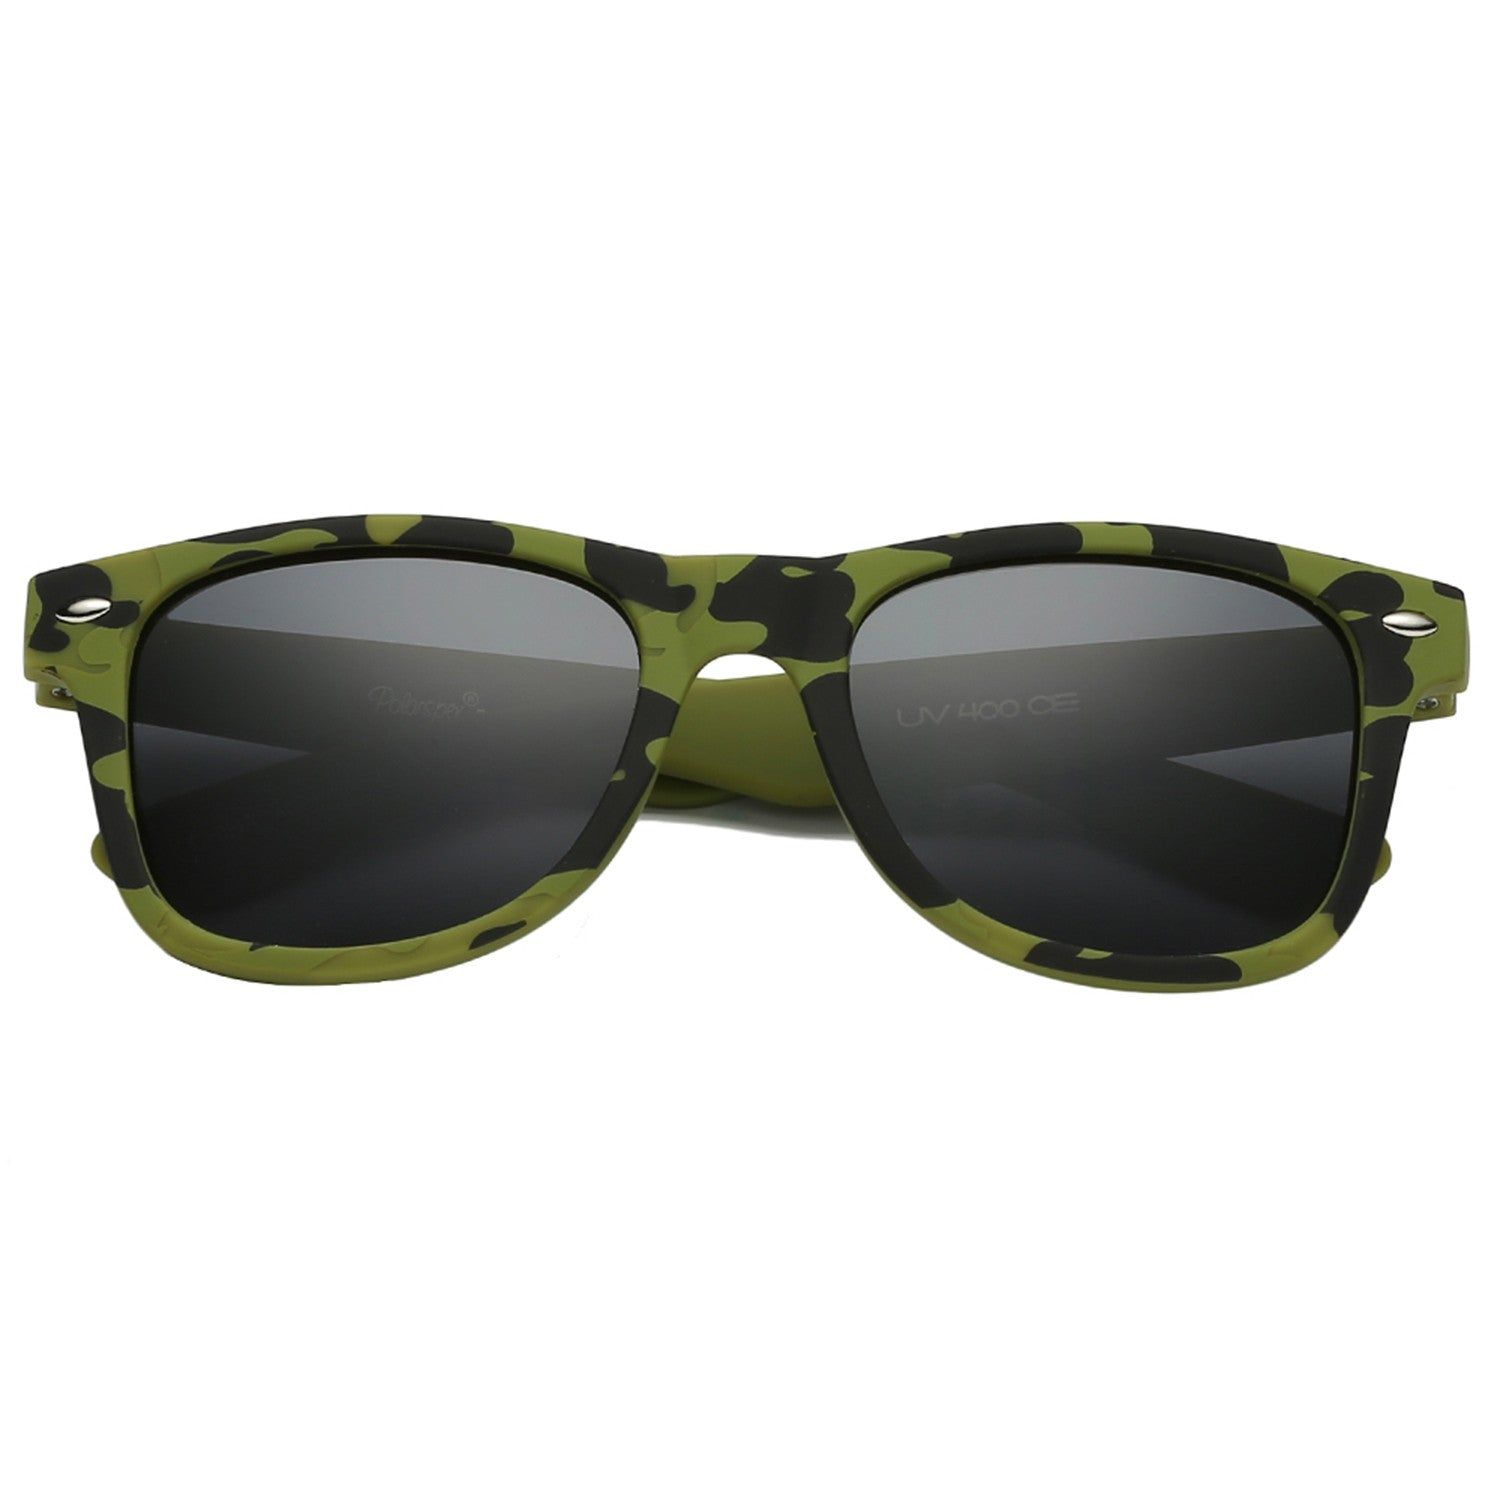 Polarspex Polarized 80's Retro Style Kids Sunglasses with Rubberized Camouflage Green Frames and Polarized Smoke Lenses for Boys and Girls